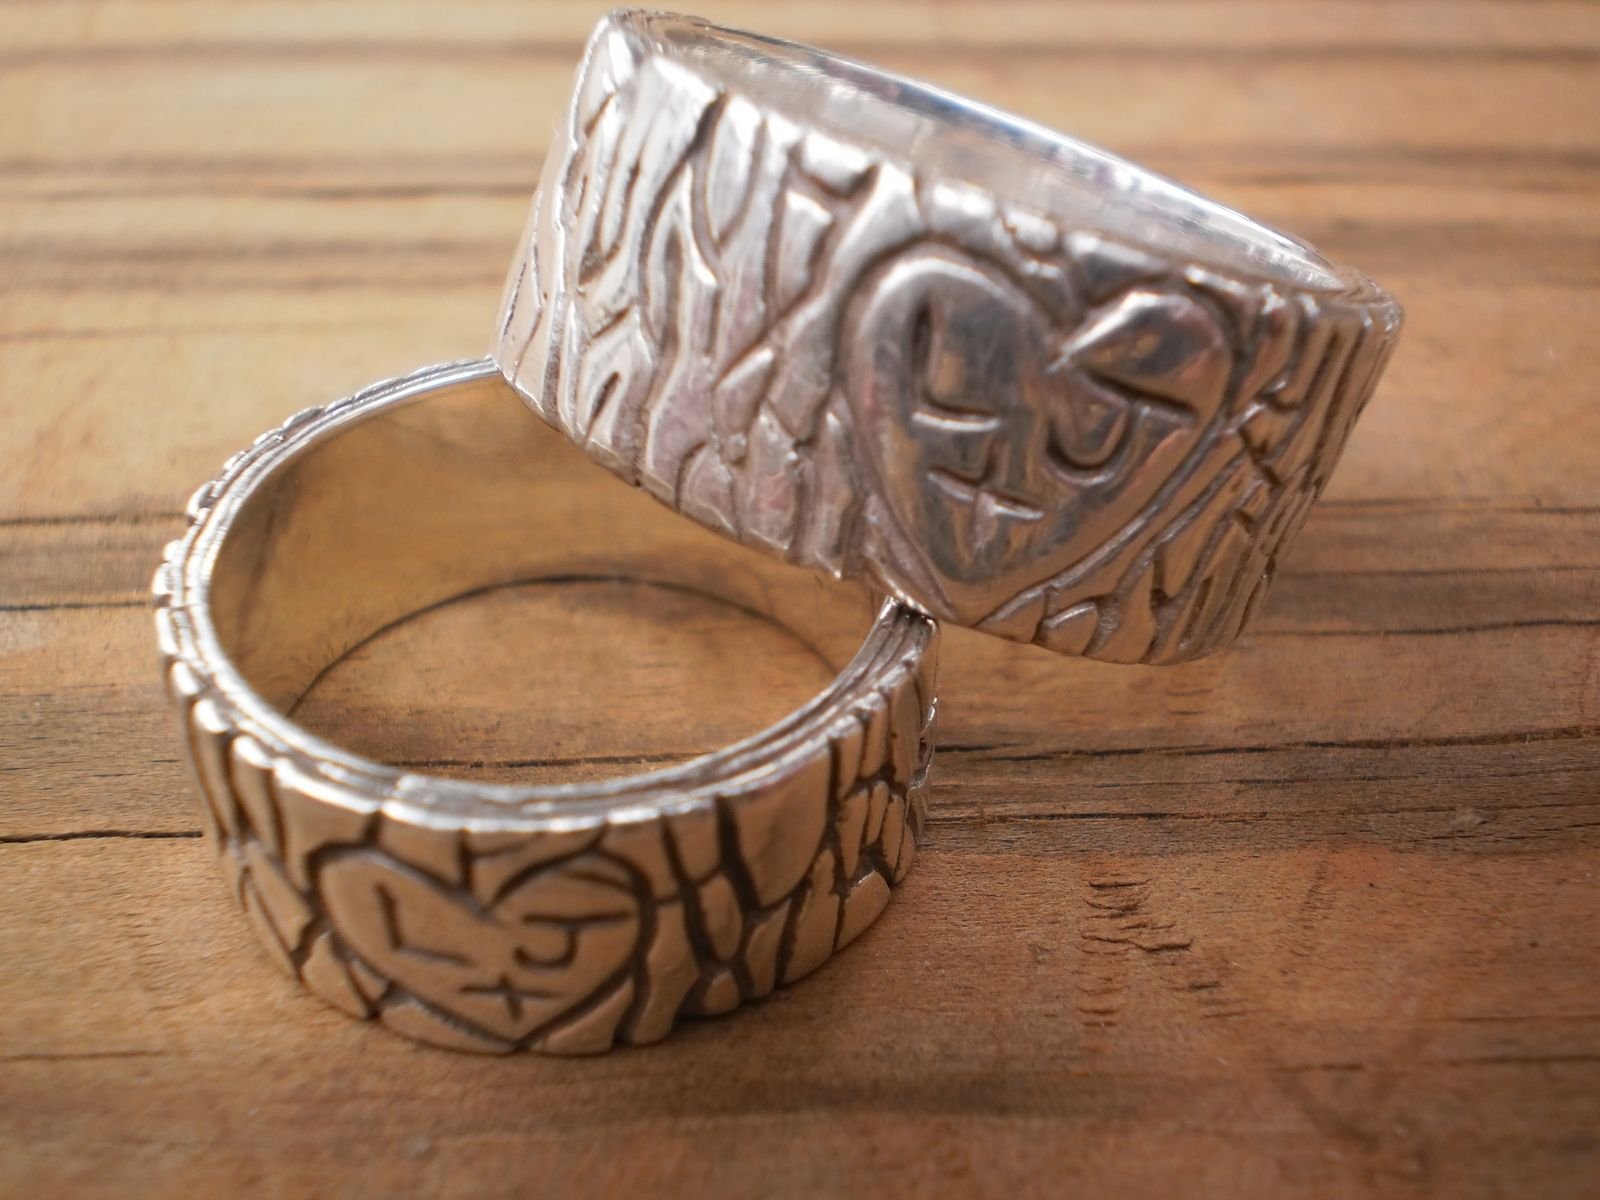 initial tree stump rustic wedding bands his and hers - Rustic Wedding Rings